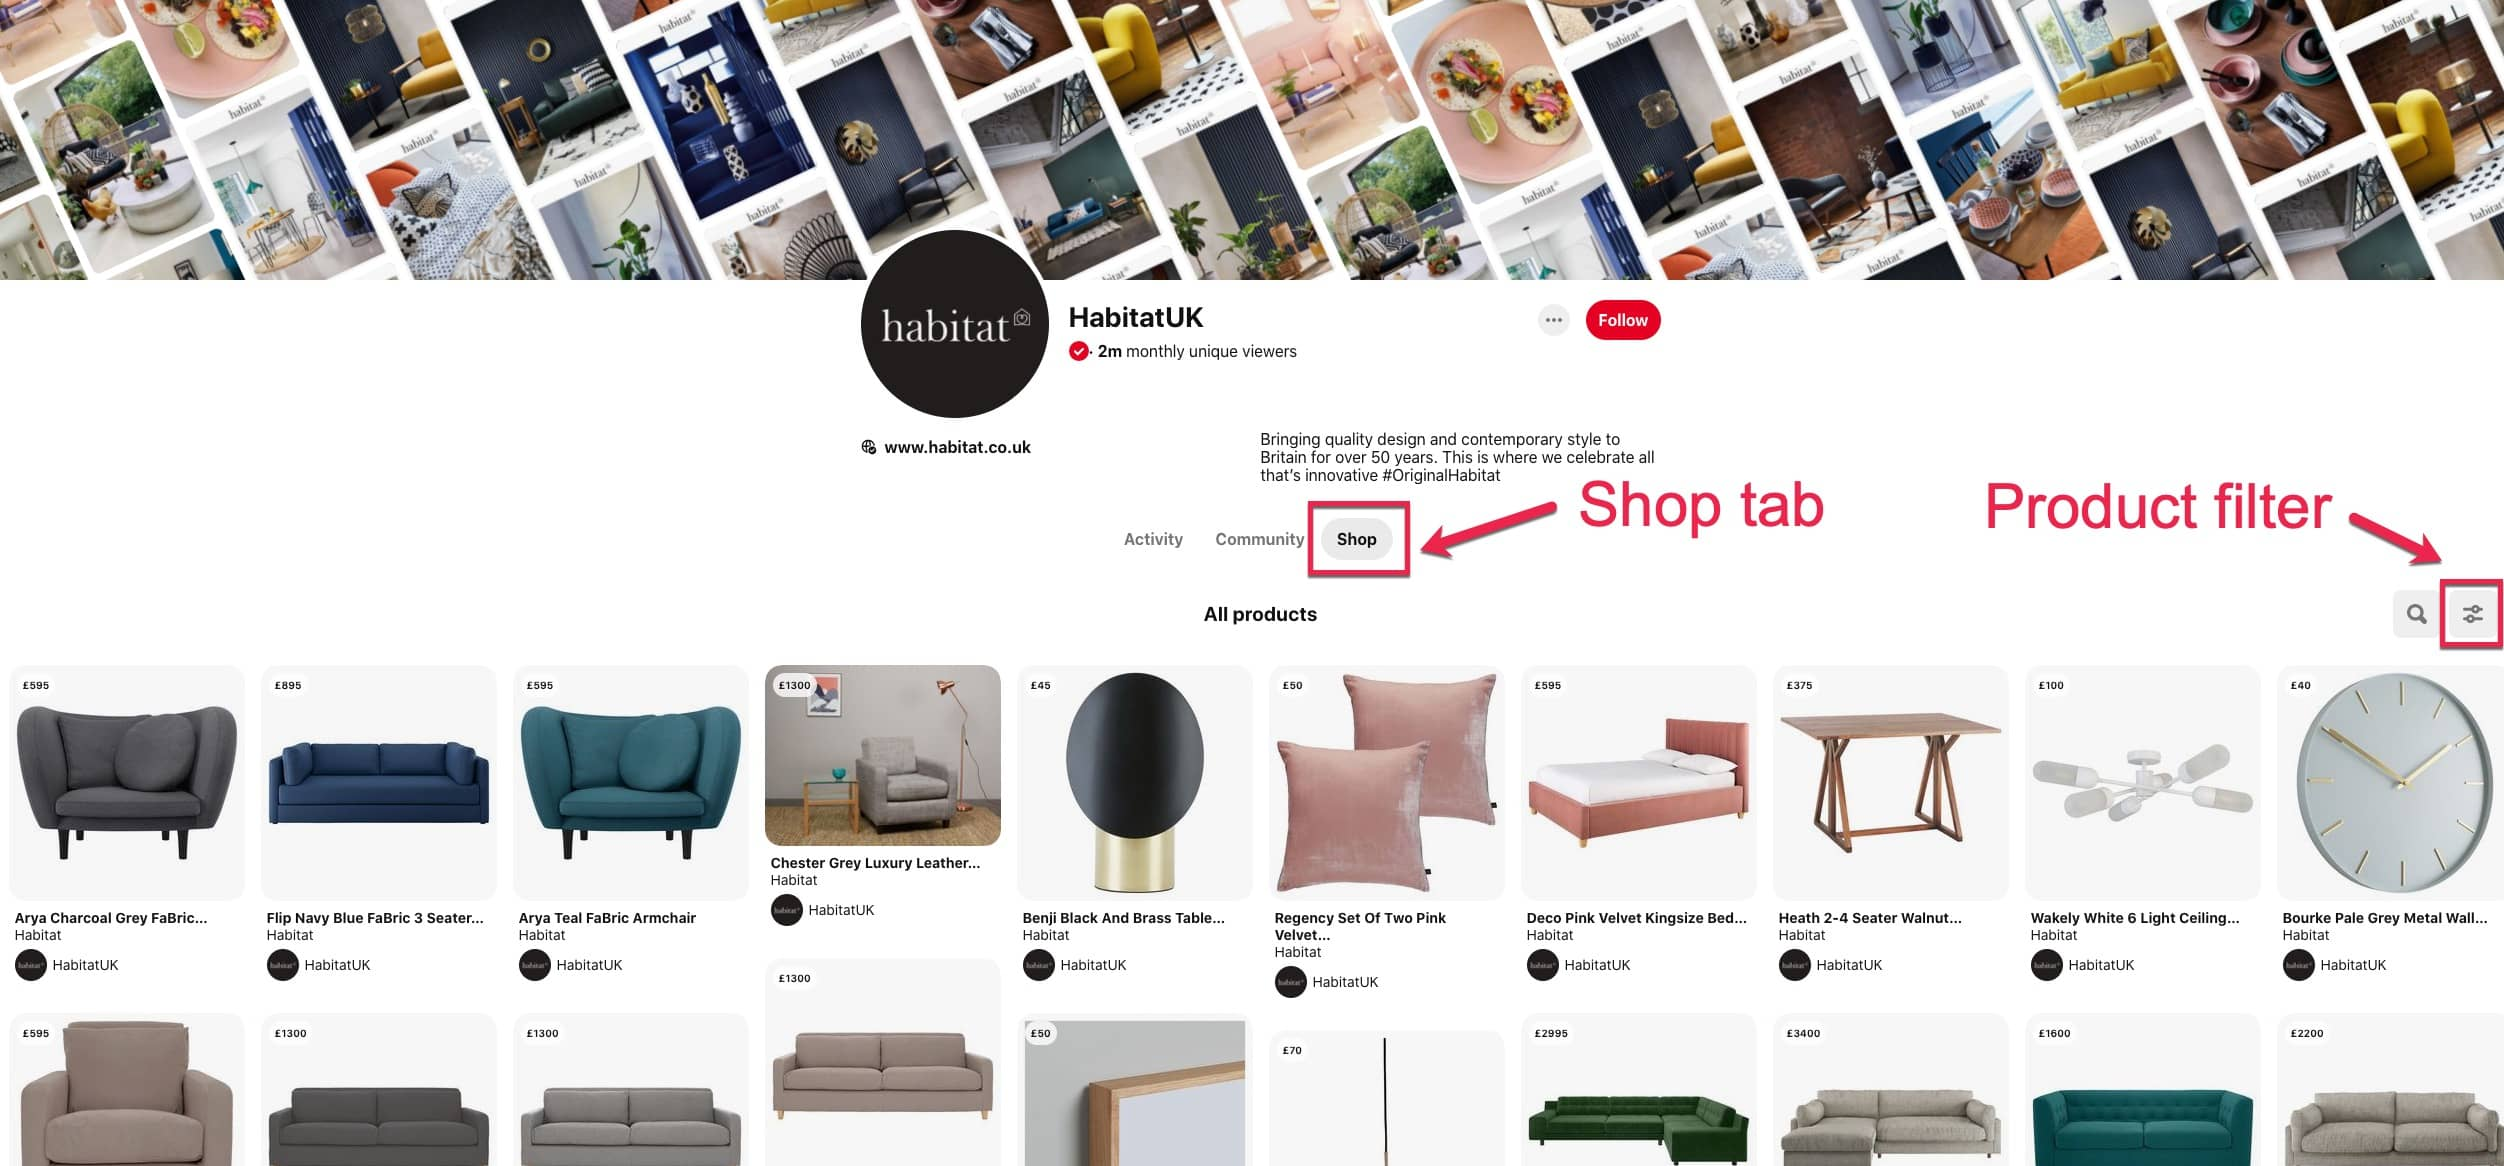 Image of Habitat Shop tab on Pinterest